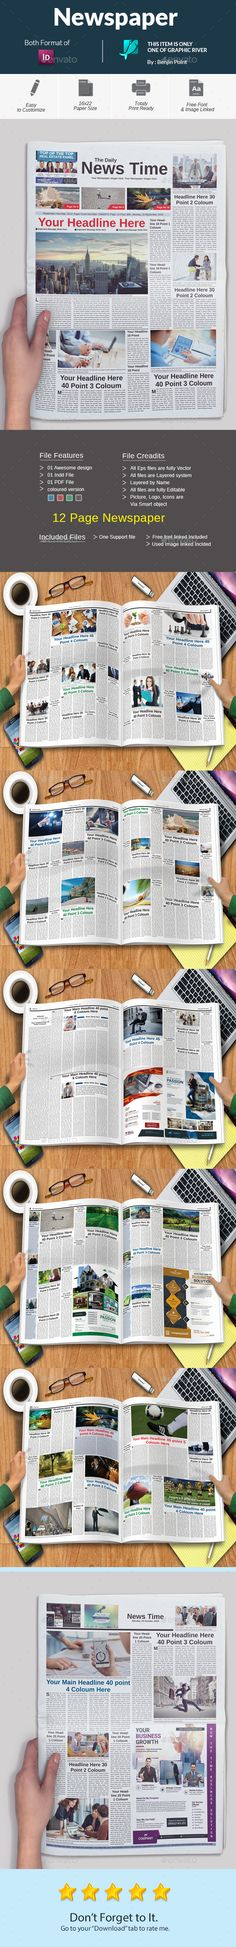 Newspaper  — InDesign Template #daily newspaper • Download ➝ https://graphicriver.net/item/newspaper/18447703?ref=pxcr